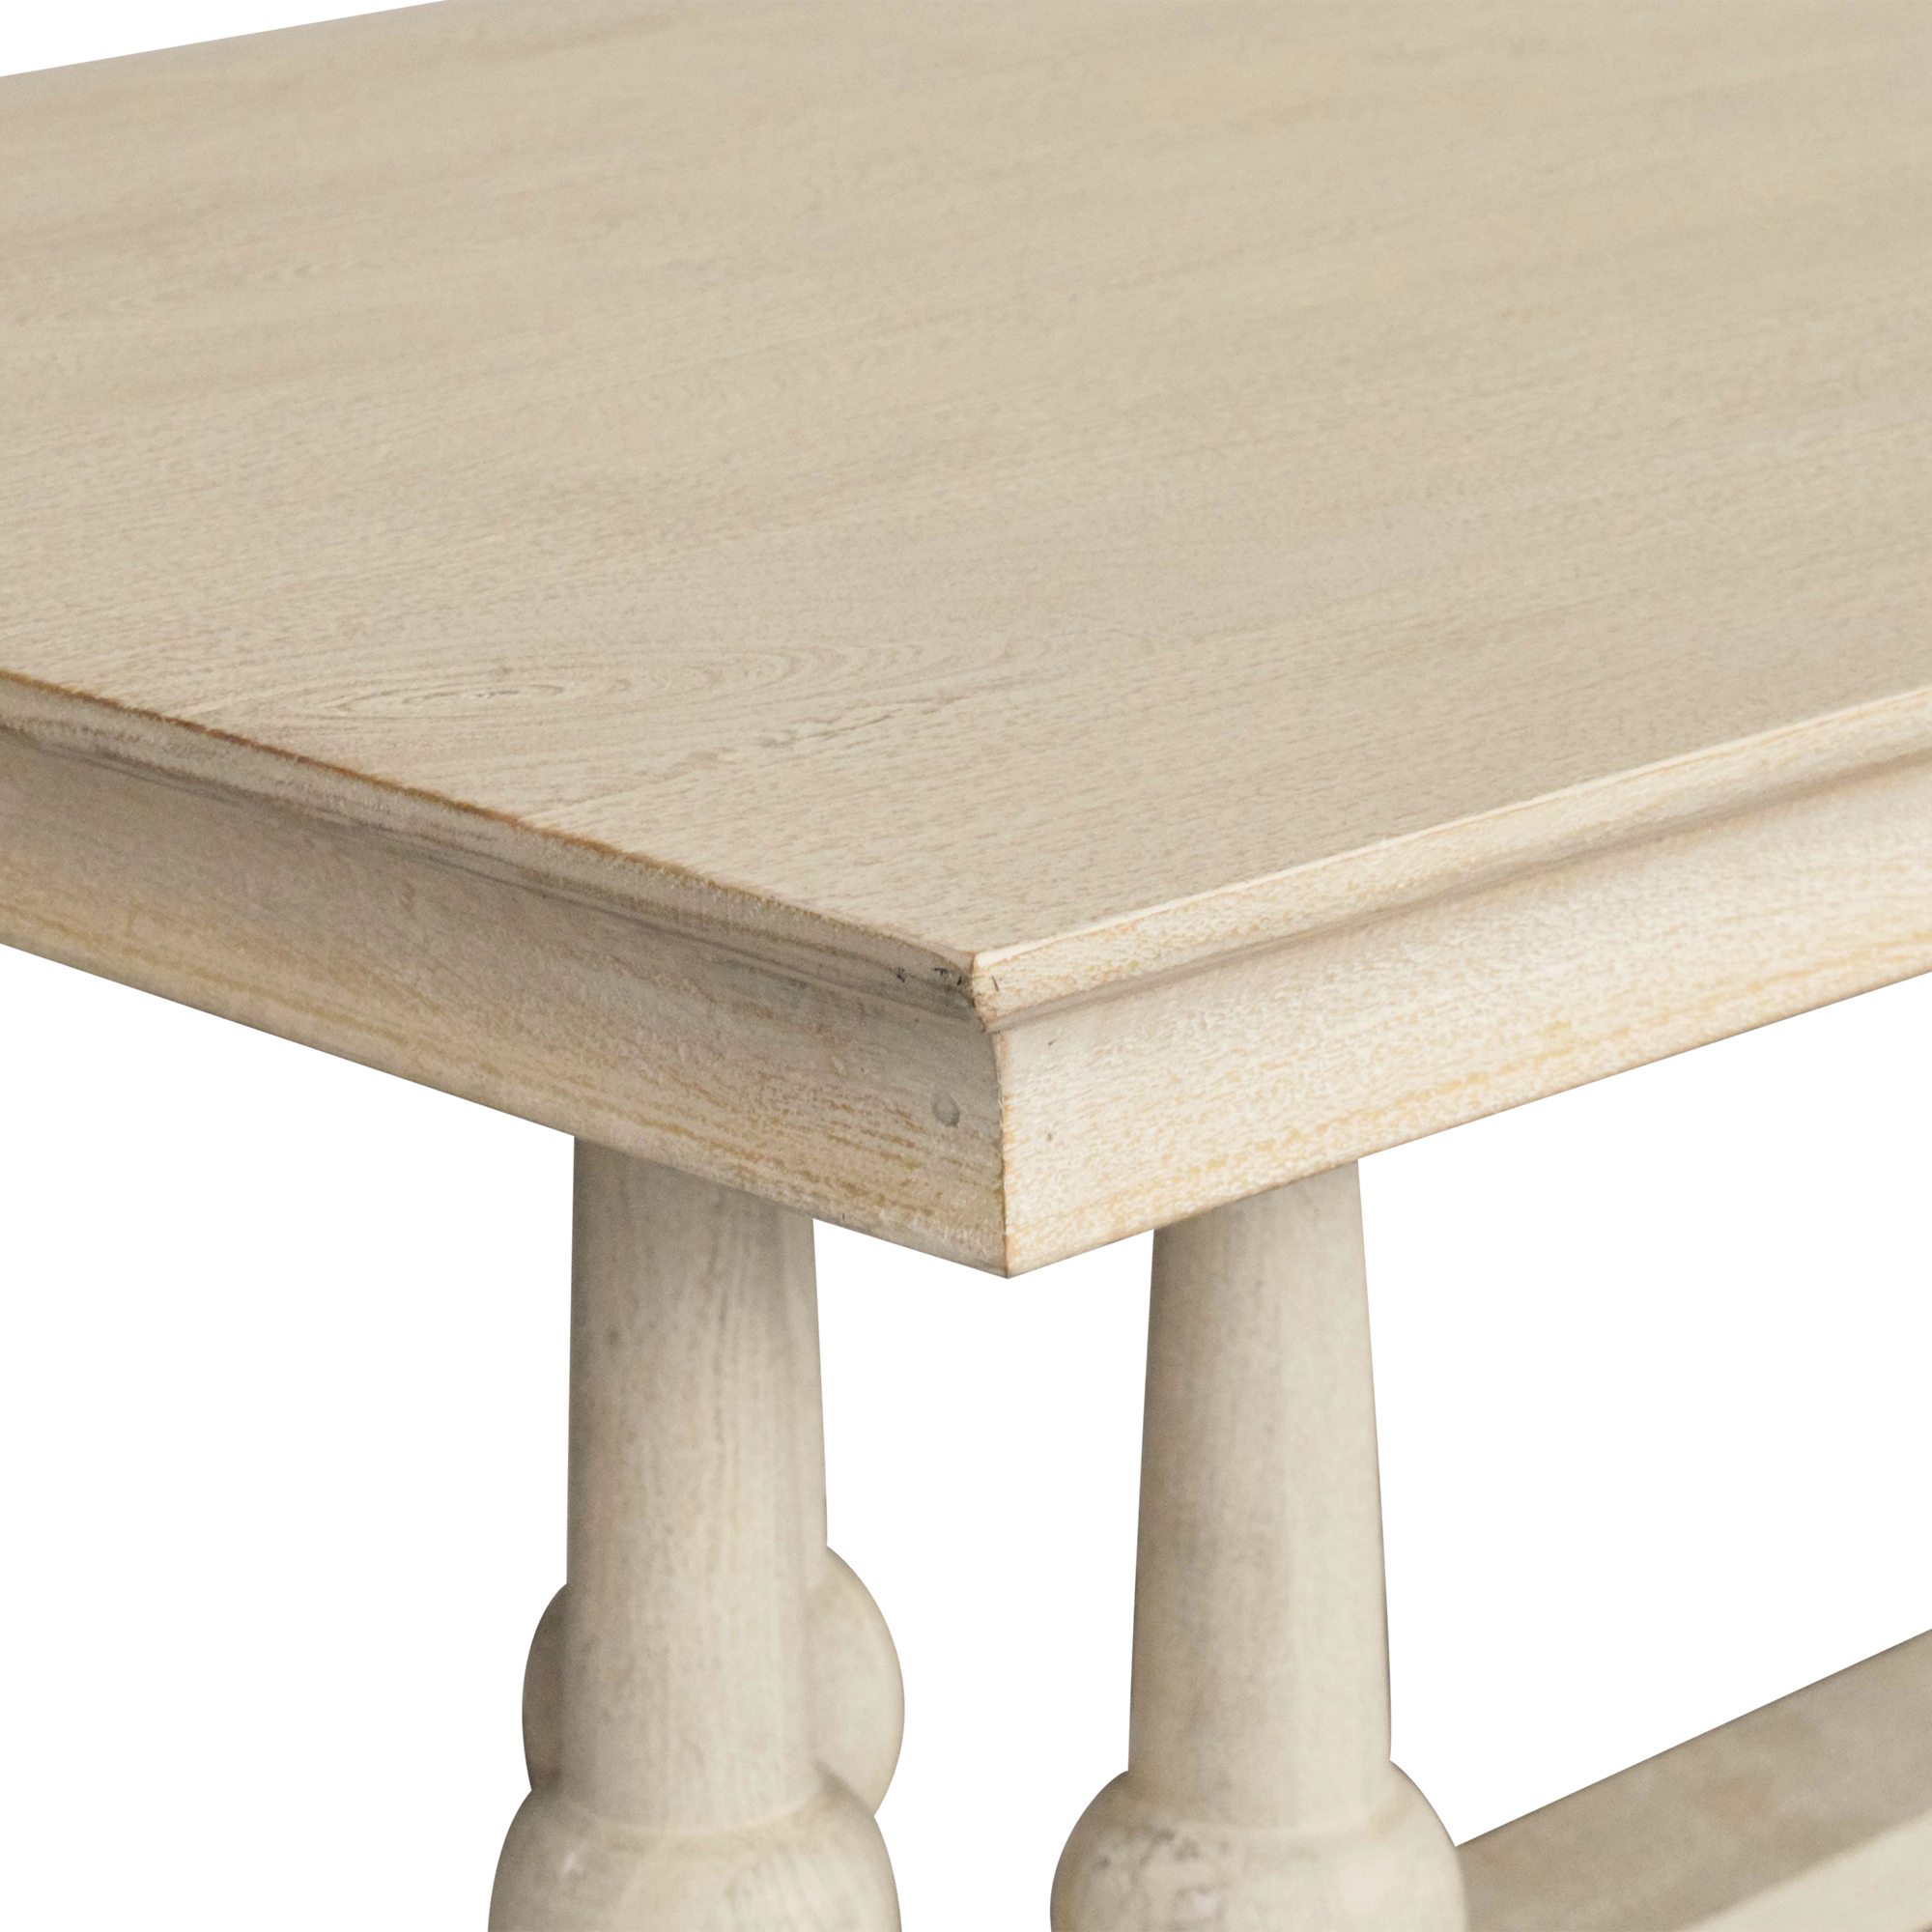 Kosas Home Kosas Home Beverly Ten Seater Dining Table nyc